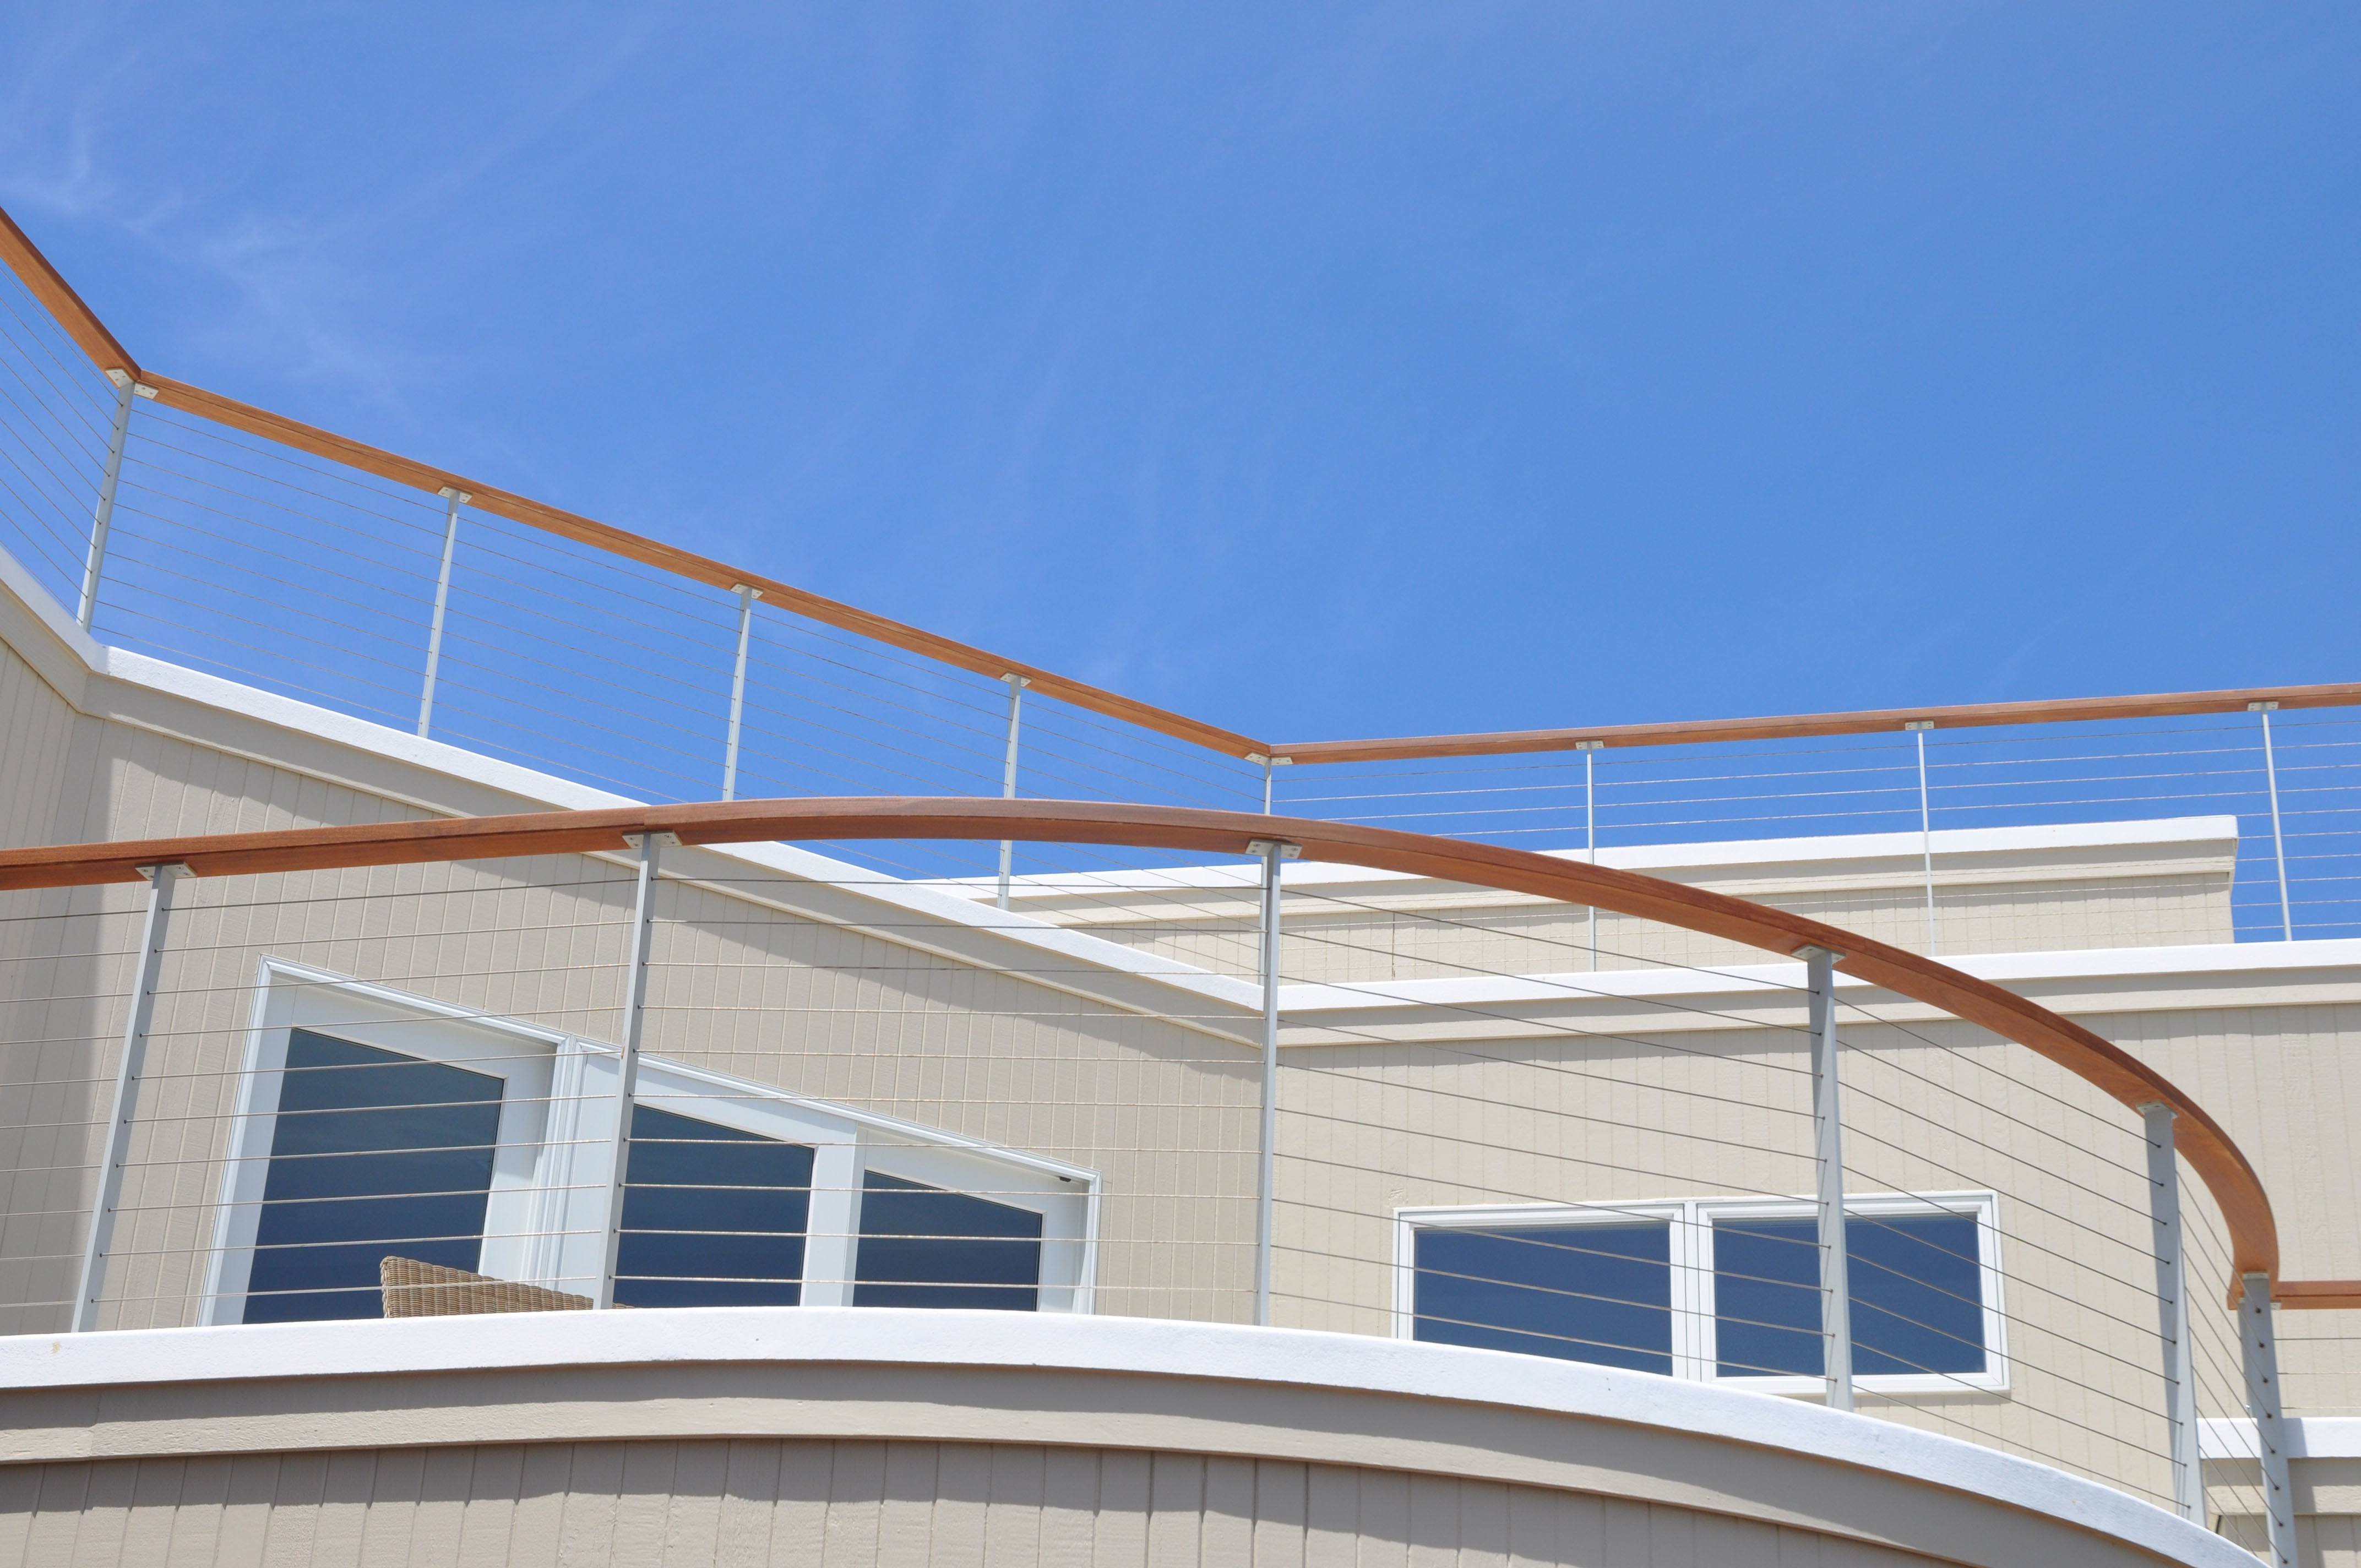 This Ithaca style Anodized Aluminum cable railing complements this Jersey shore home